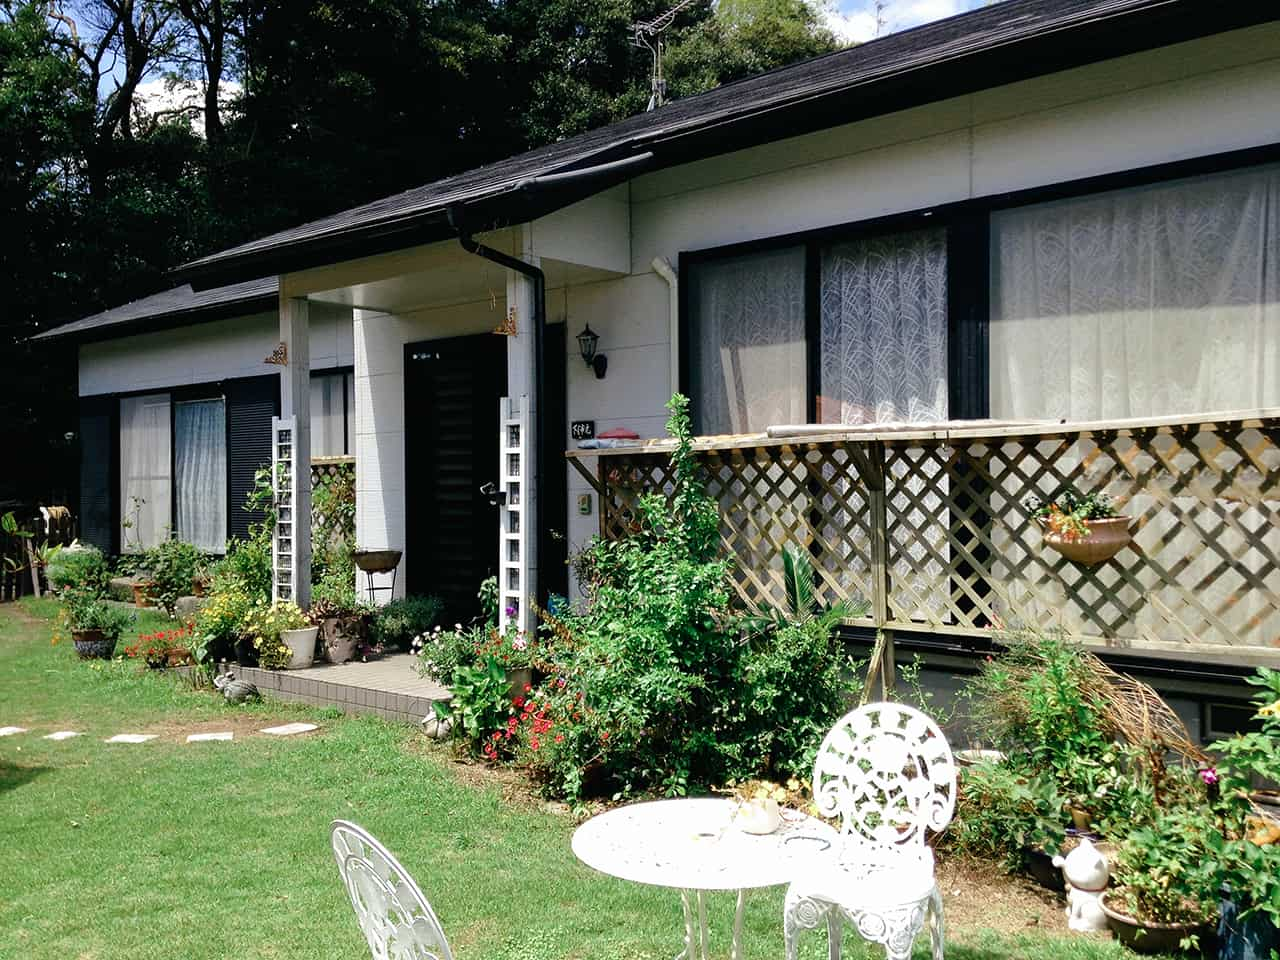 10 Farm Stays in Japan | Farm-stay in Kagoshima